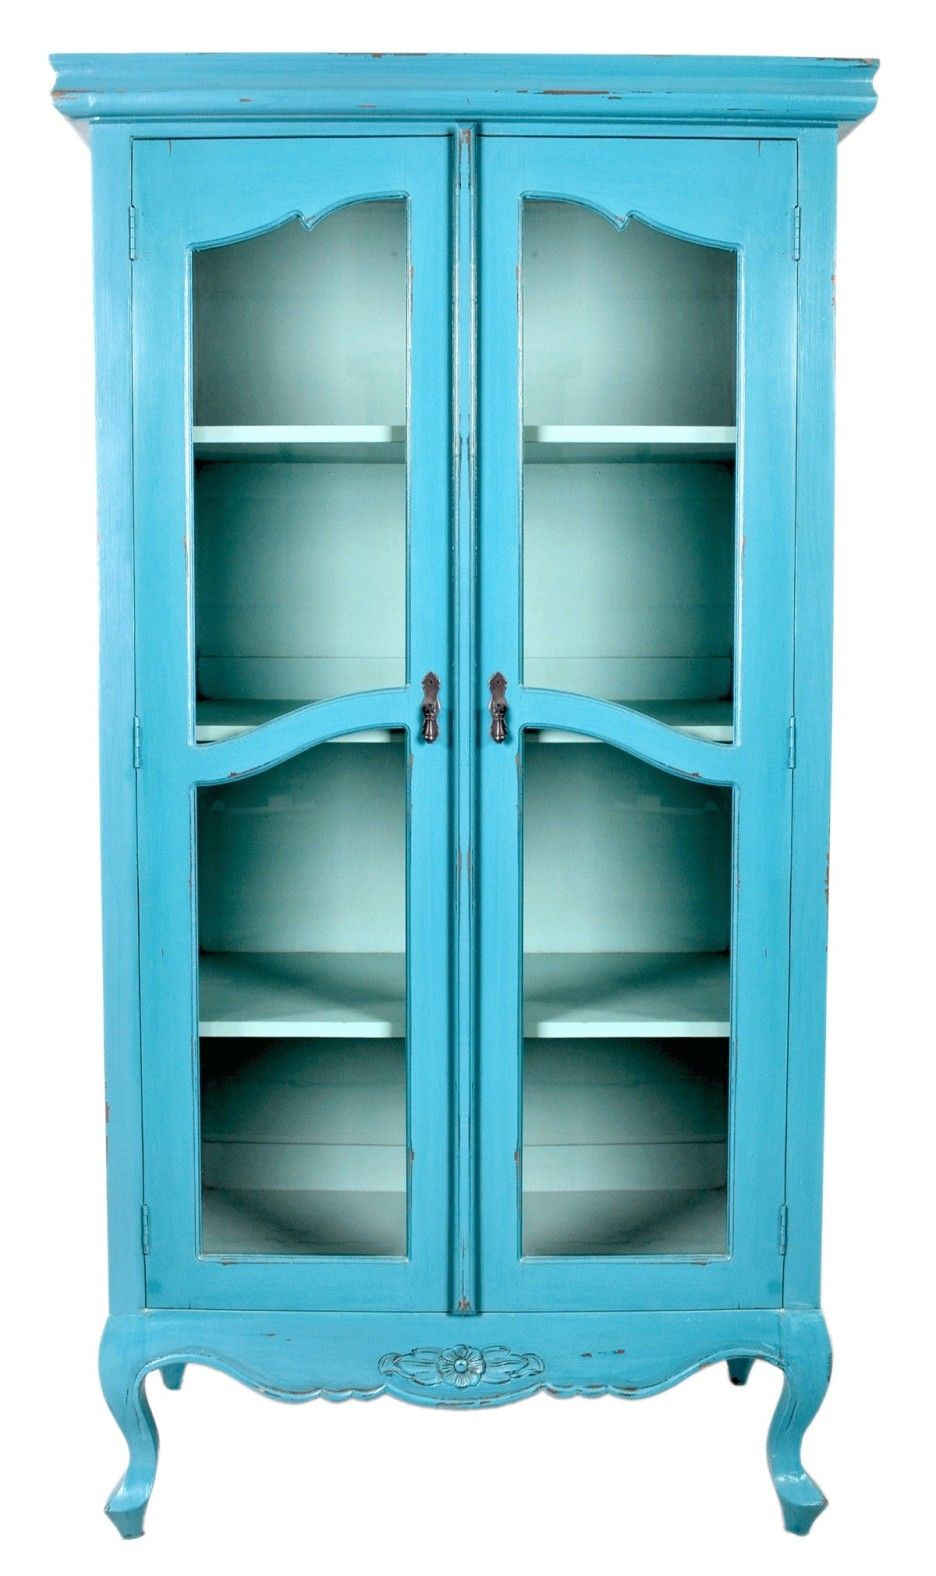 Small Cabinet with Glass Doors Fresh Turquoise Tall Narrow Cabinet with Glass Door In Classic